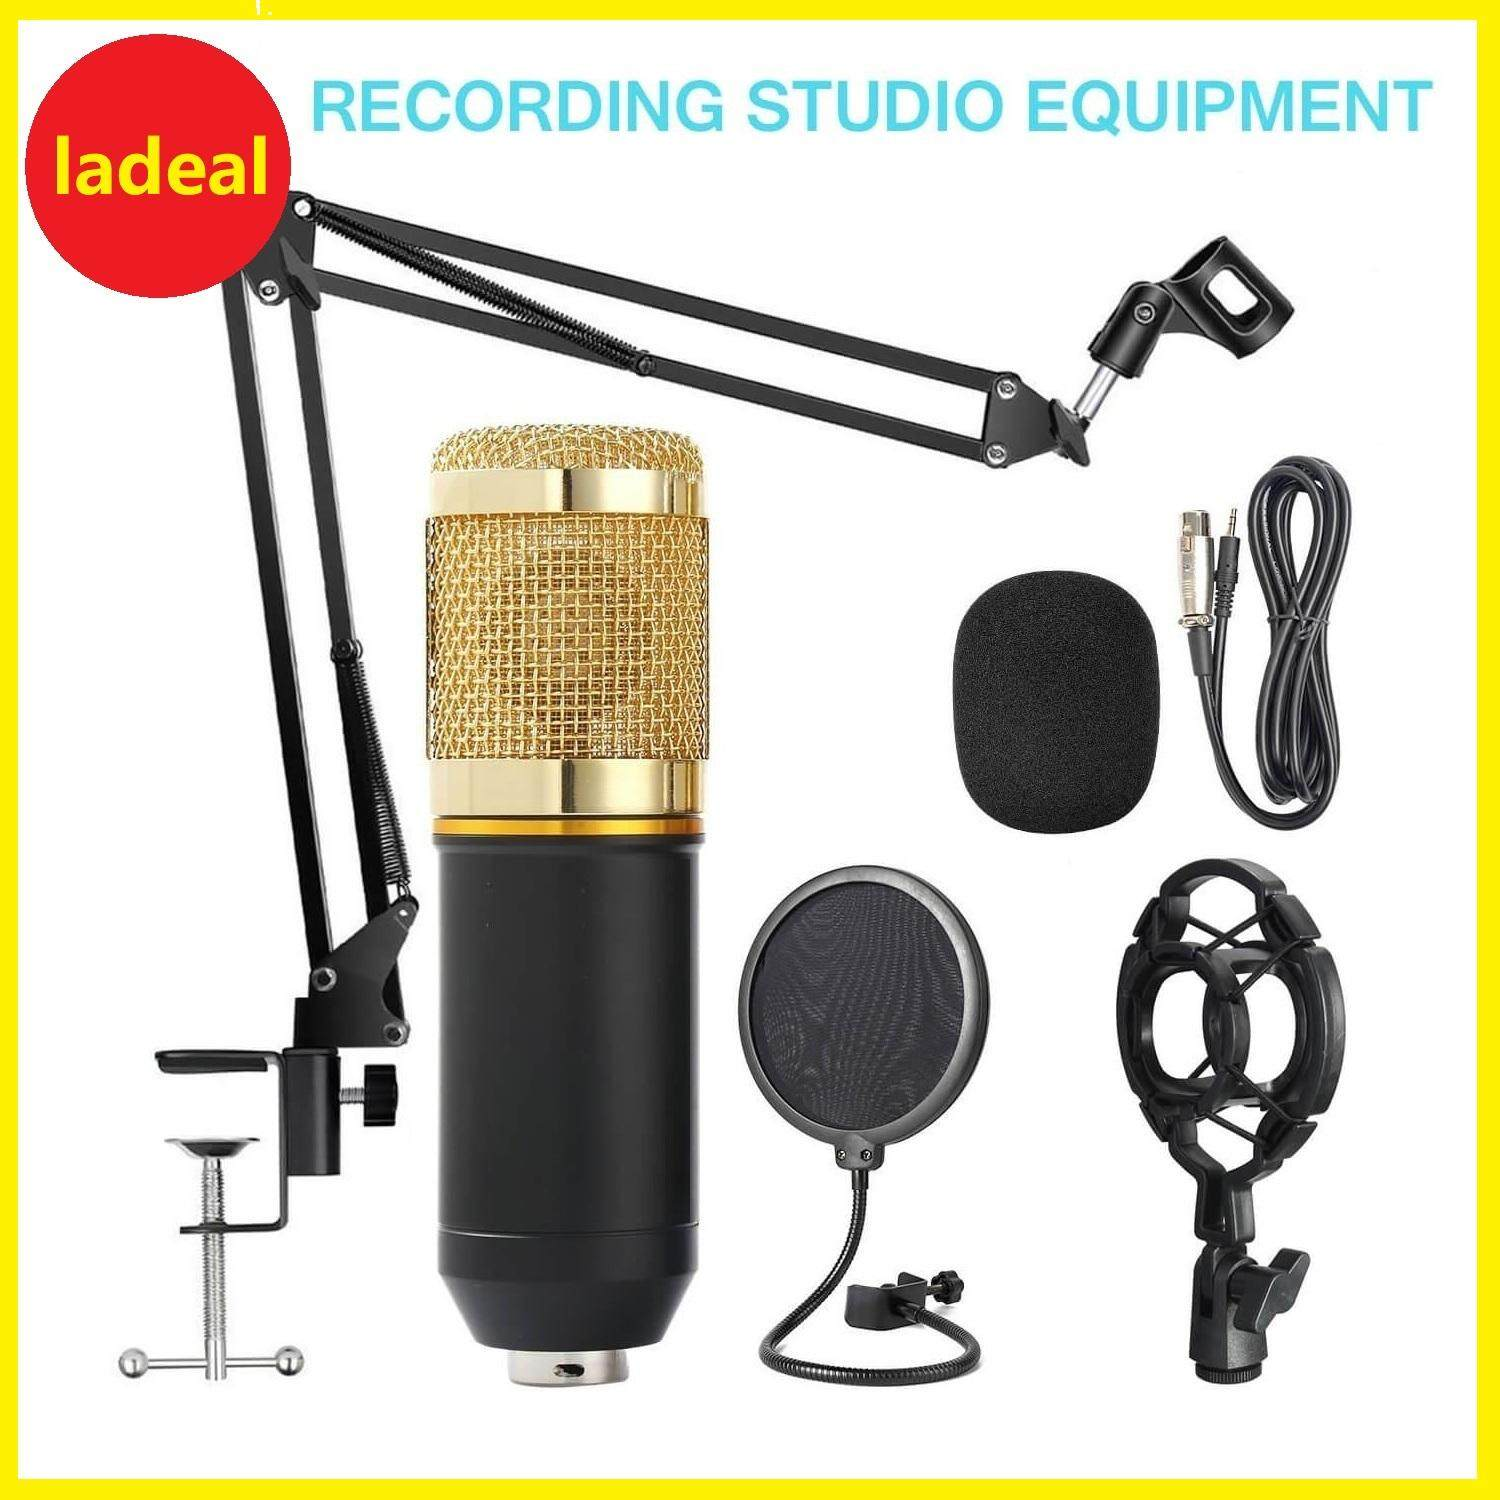 Professional Condenser Studio Microphone (display Model, Ships From Malaysia) By Ladeal.